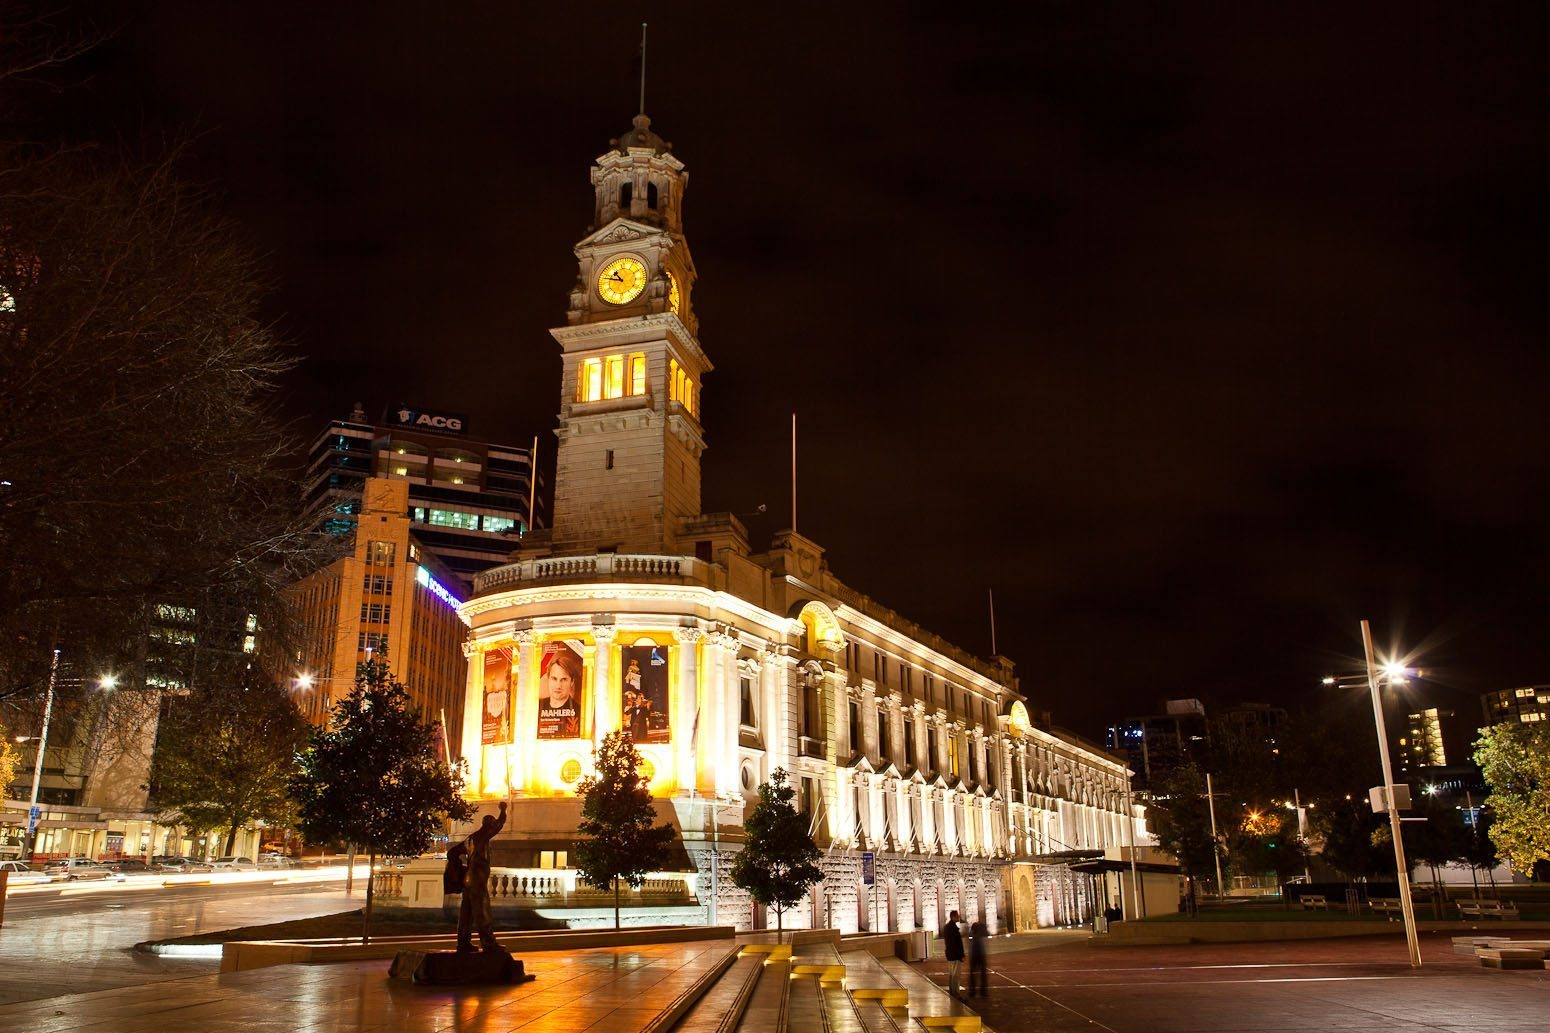 Auckland Town Hall. Photo credit: Simon Darby